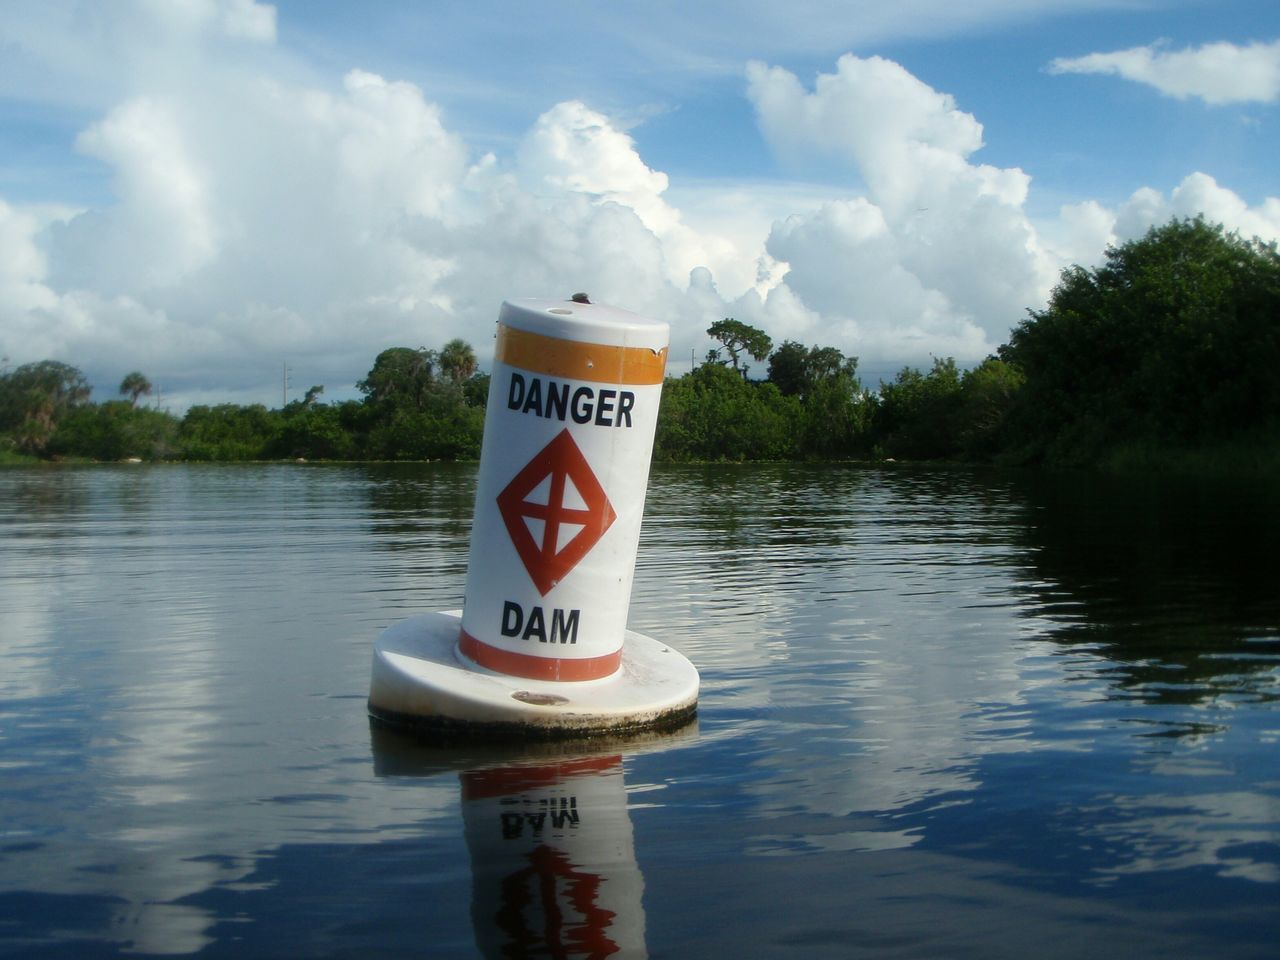 Danger Dam Danger Sign Water Dam Water Reservoir No People Water Reflections Still Water Calm Waters Water Environment Lake Nature Outdoors Communication Warning Sign Calm Water Reflection Buoy